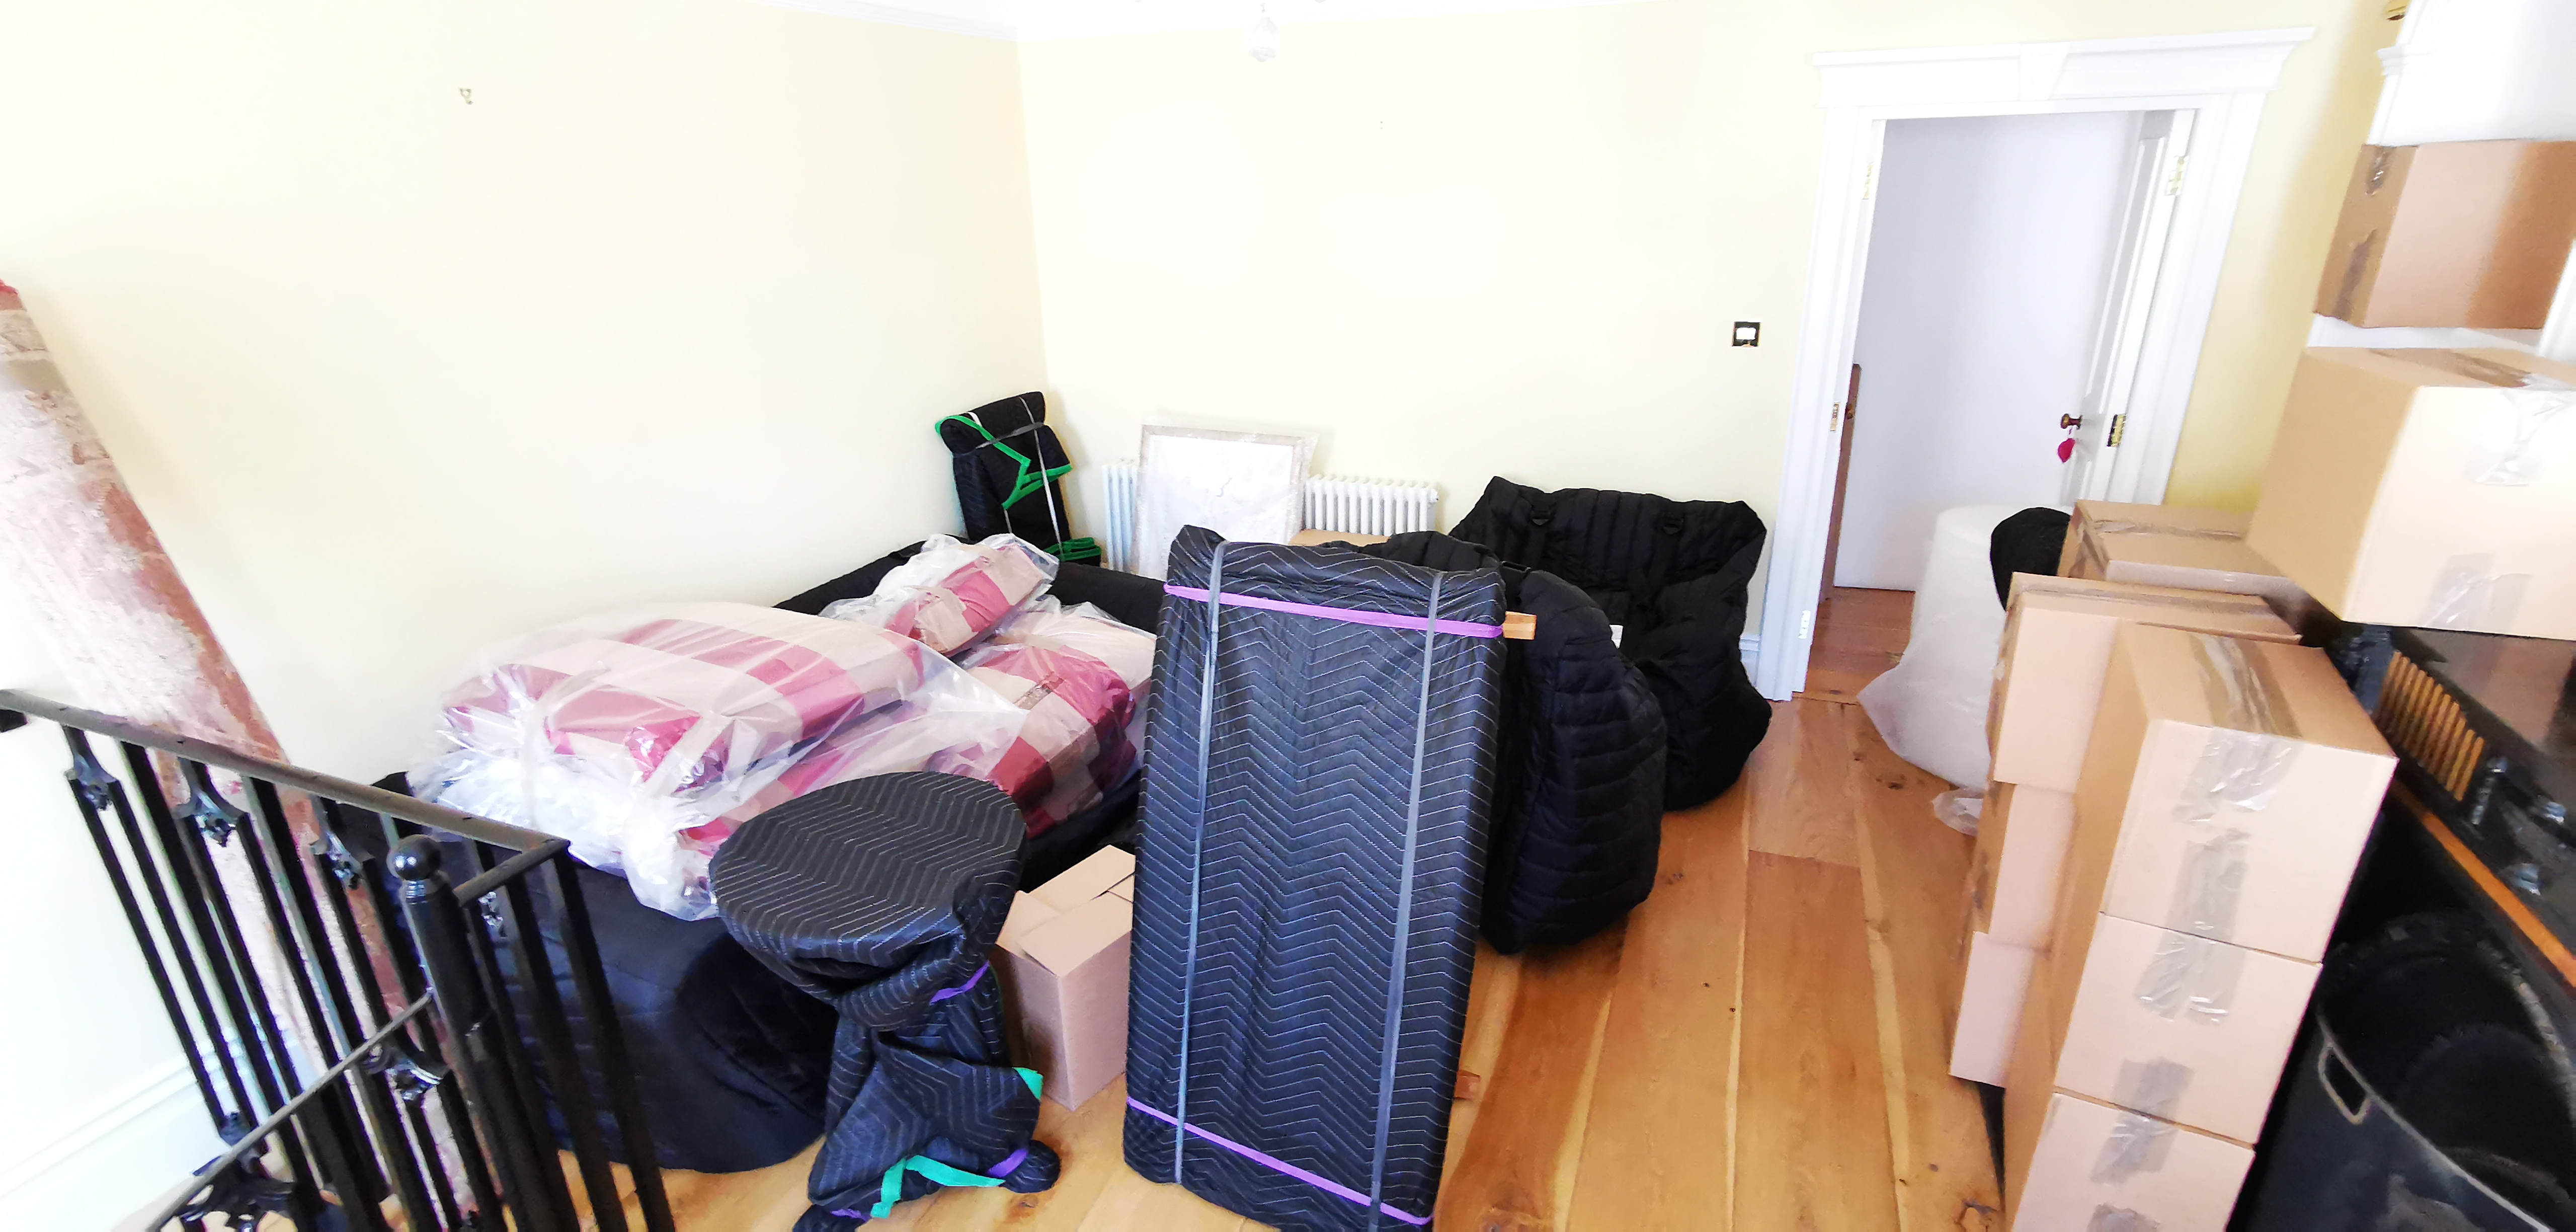 Packing services in Wokingham